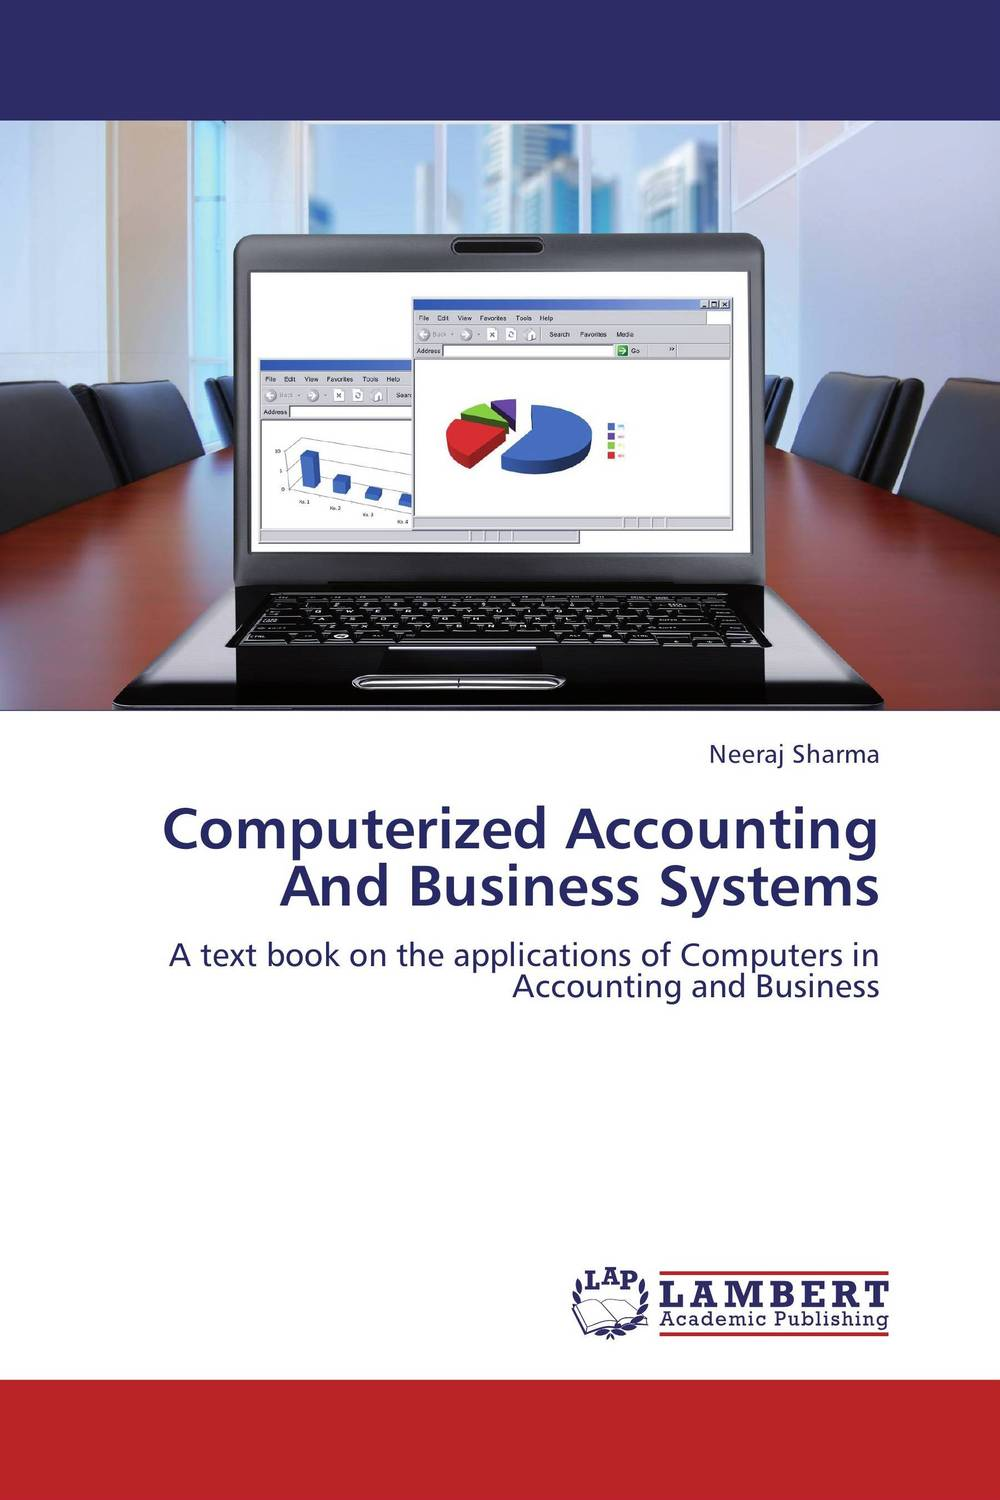 Computerized Accounting And Business Systems frank buytendijk dealing with dilemmas where business analytics fall short